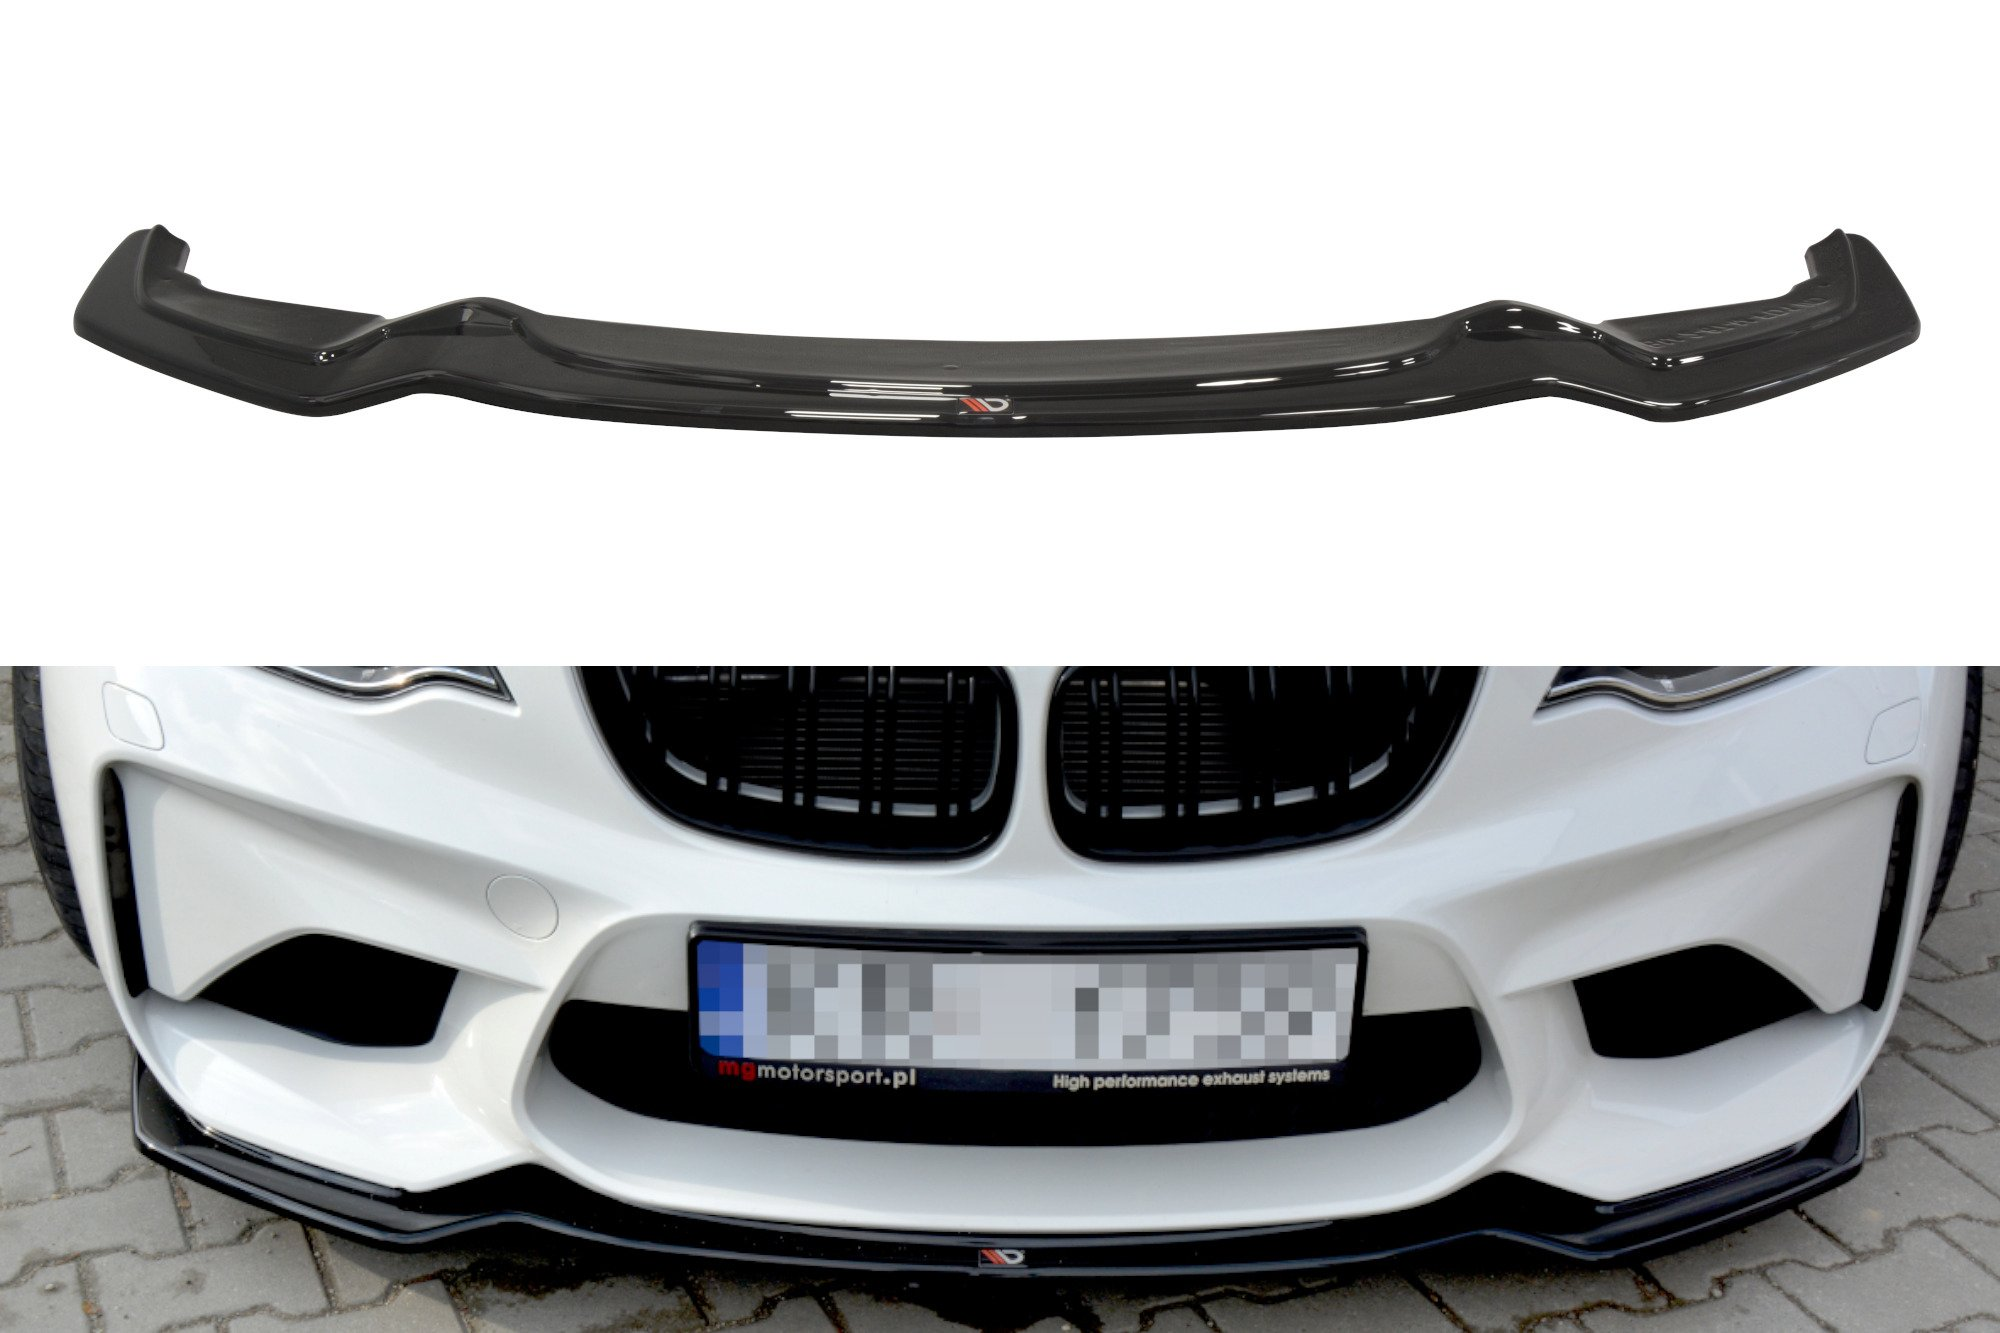 eng_pl_FRONT-SPLITTER-BMW-M2-F87-COUPE-6864_9